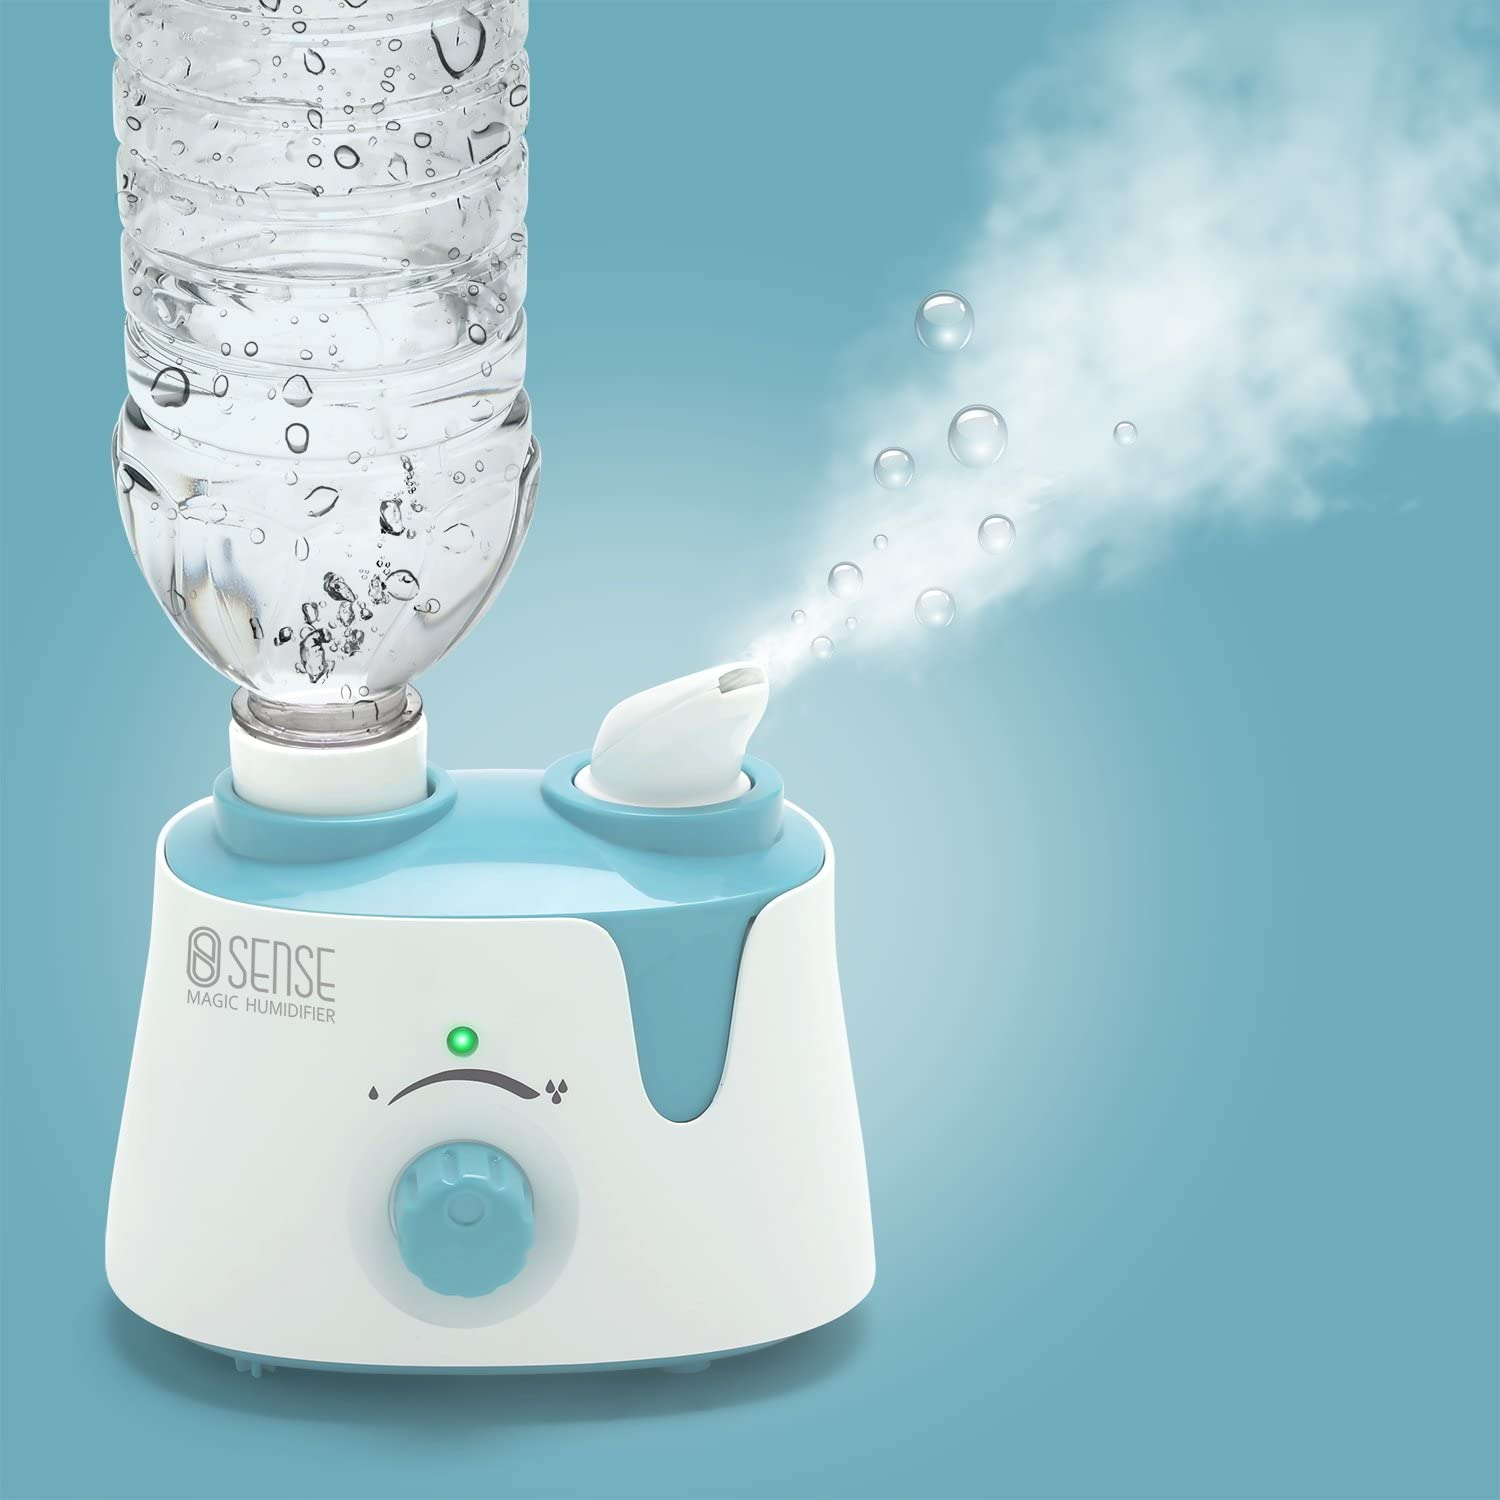 Humidifier Health Hazards: The Dirty Details RTK